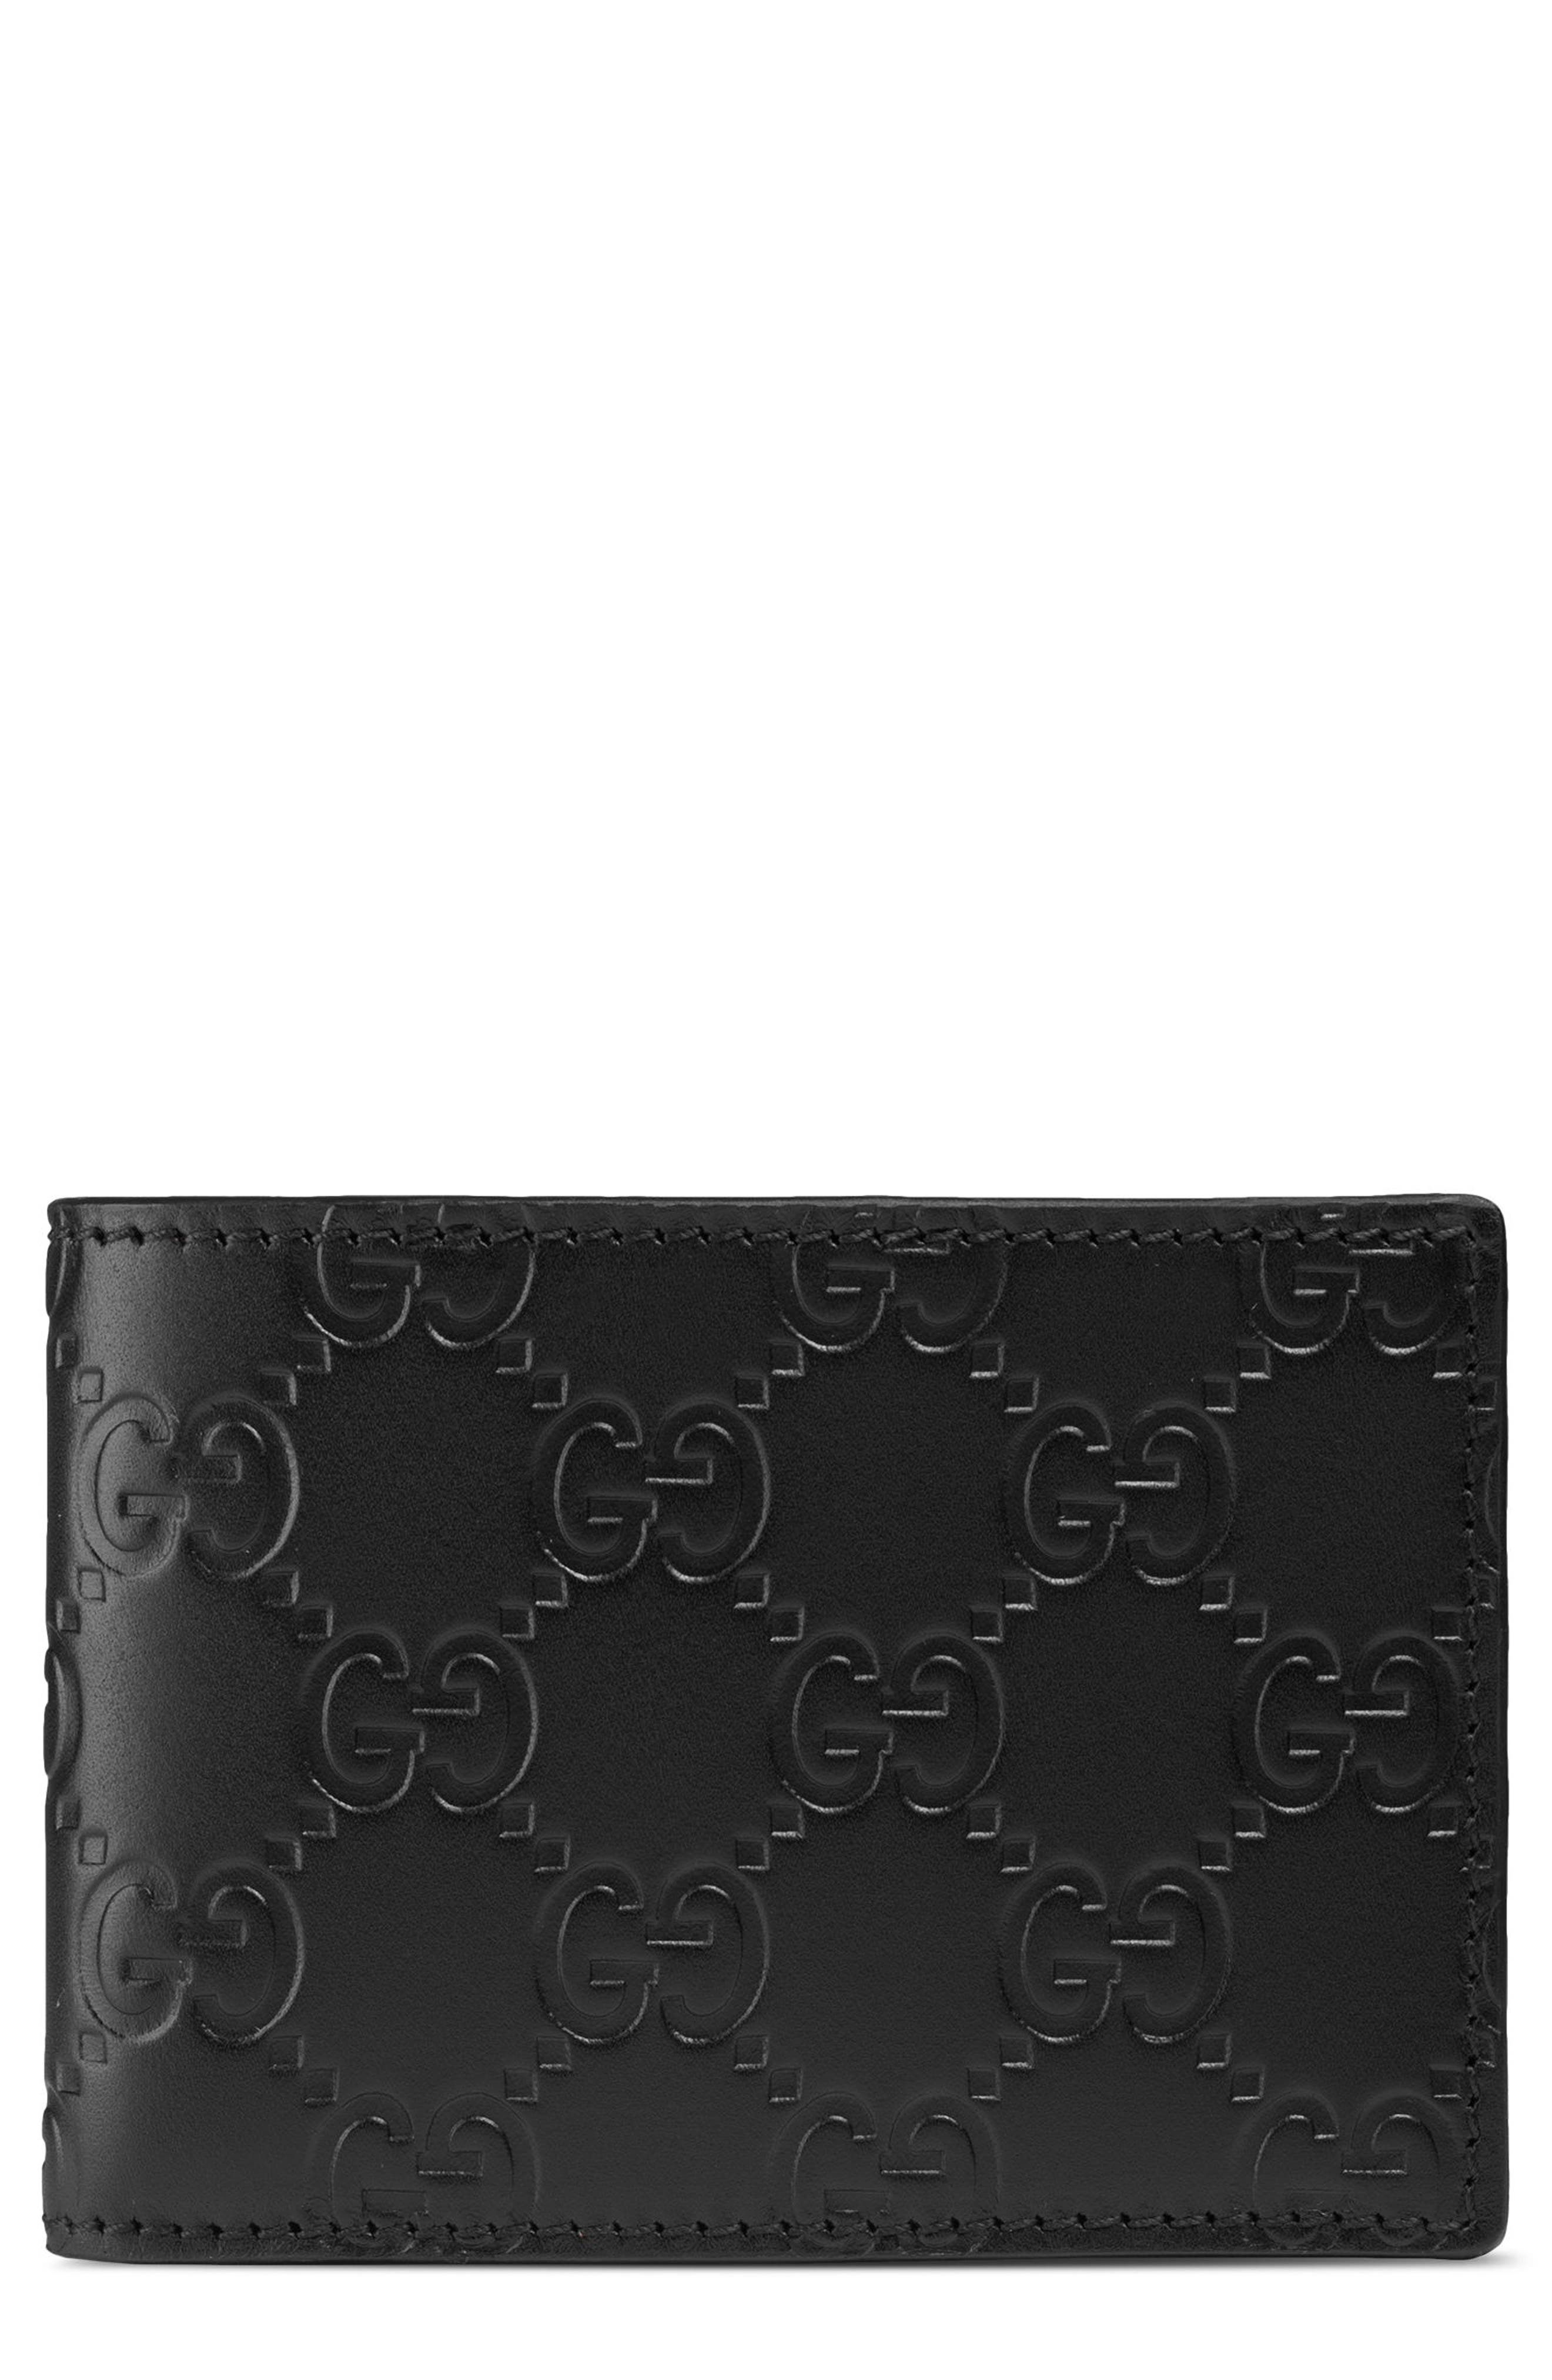 Avel Wallet,                         Main,                         color,